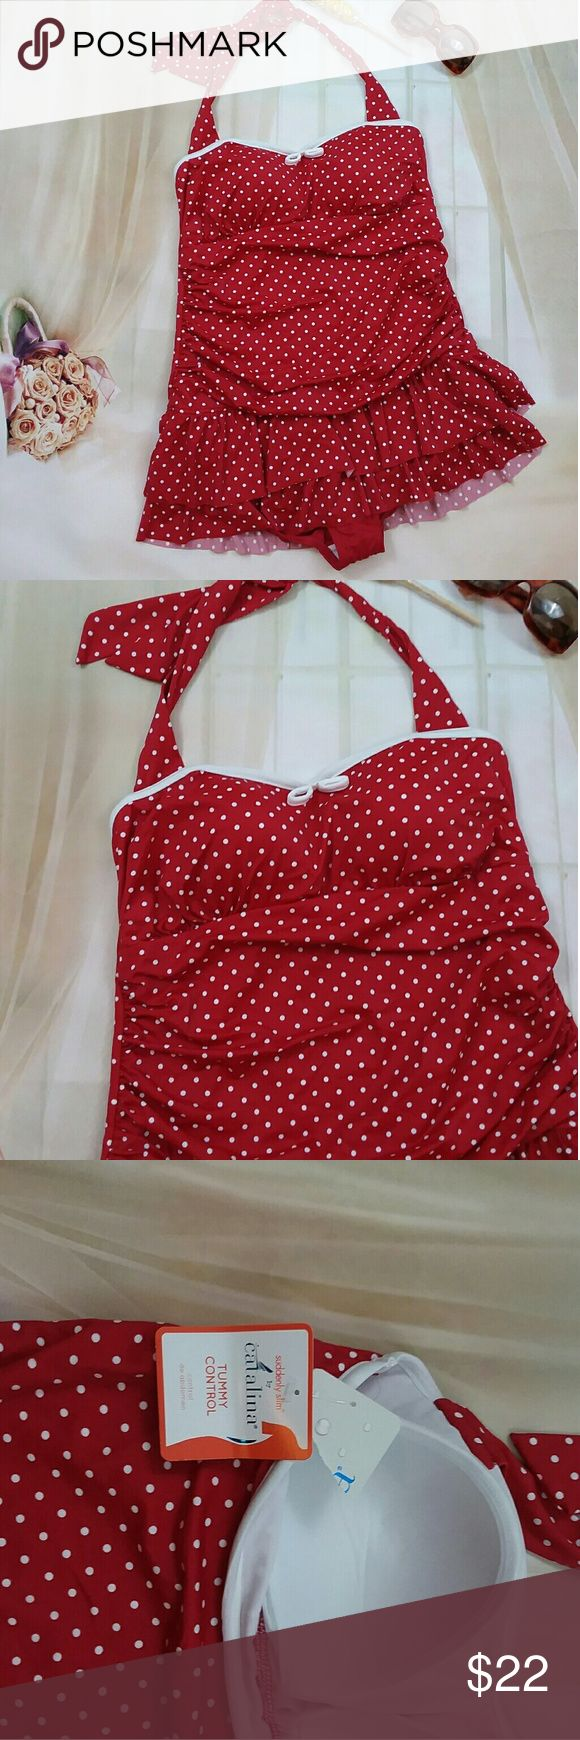 New Catalina Red Polka Dot Tummy Control Swimsuit This is a new Catalina red polka dot tummy control suddenly slim line swimsuit. It is a one piece. That does have white piping with the tiny bow at the top. It does also have a tiered ruffle skirt. Is still has the for tags and is sold without flaws or stains Catalina Swim One Pieces